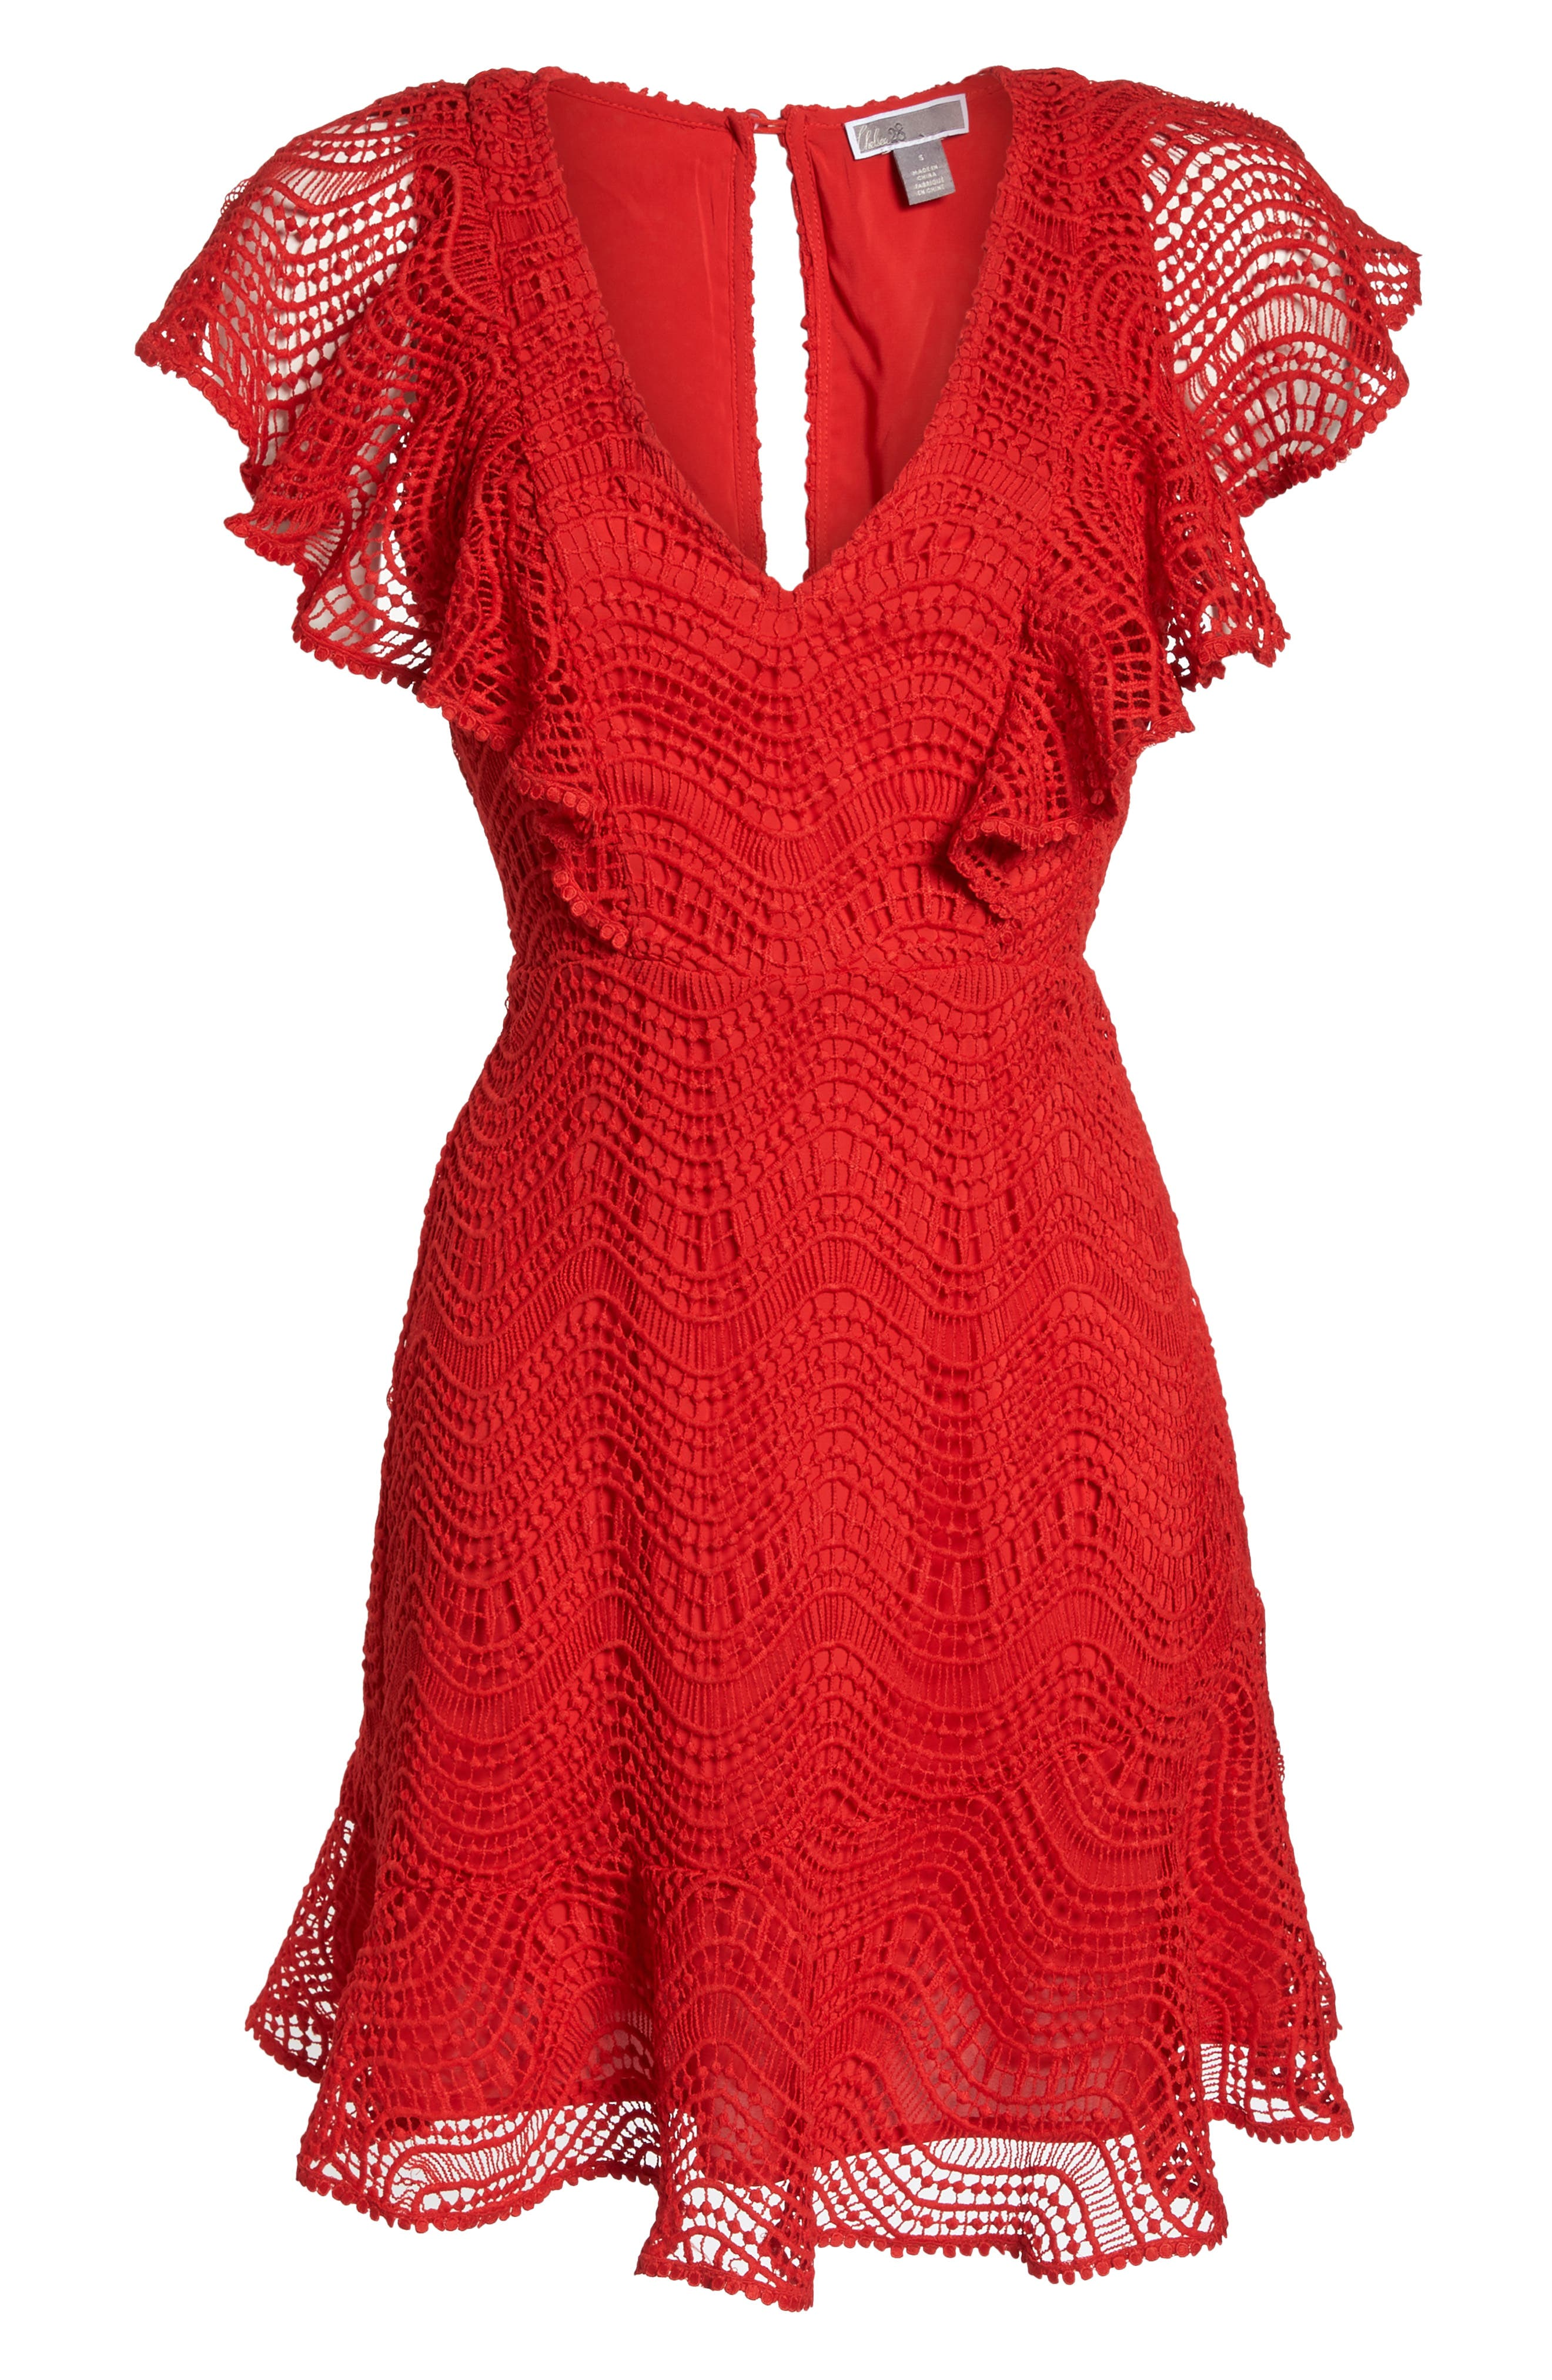 Ruffle Sleeve Lace Fit & Flare Dress,                             Alternate thumbnail 7, color,                             610